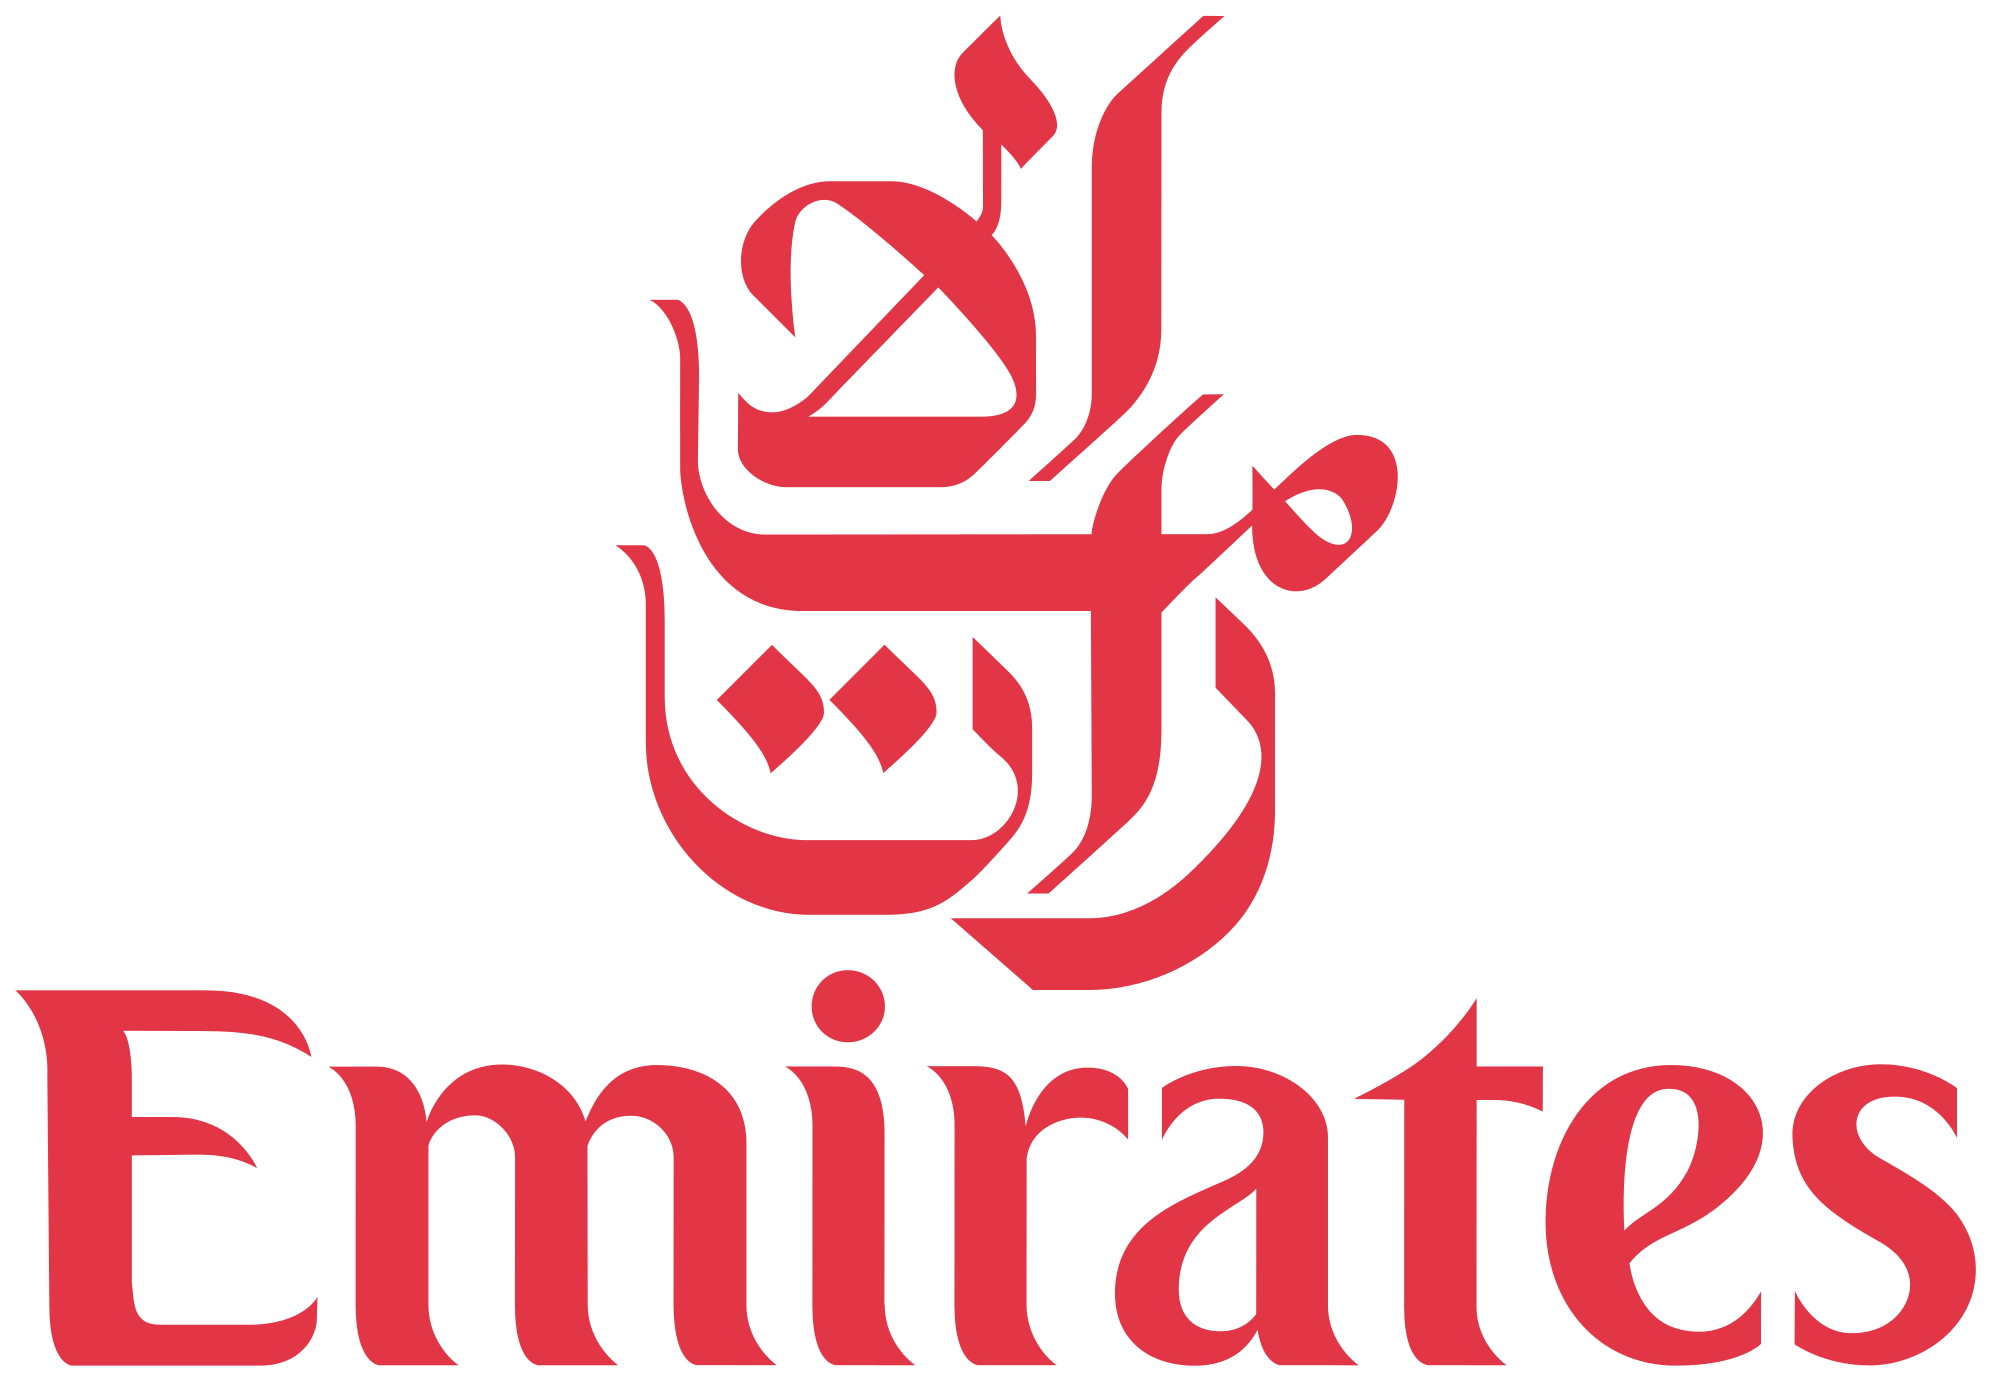 Emirates_logo.svg.png